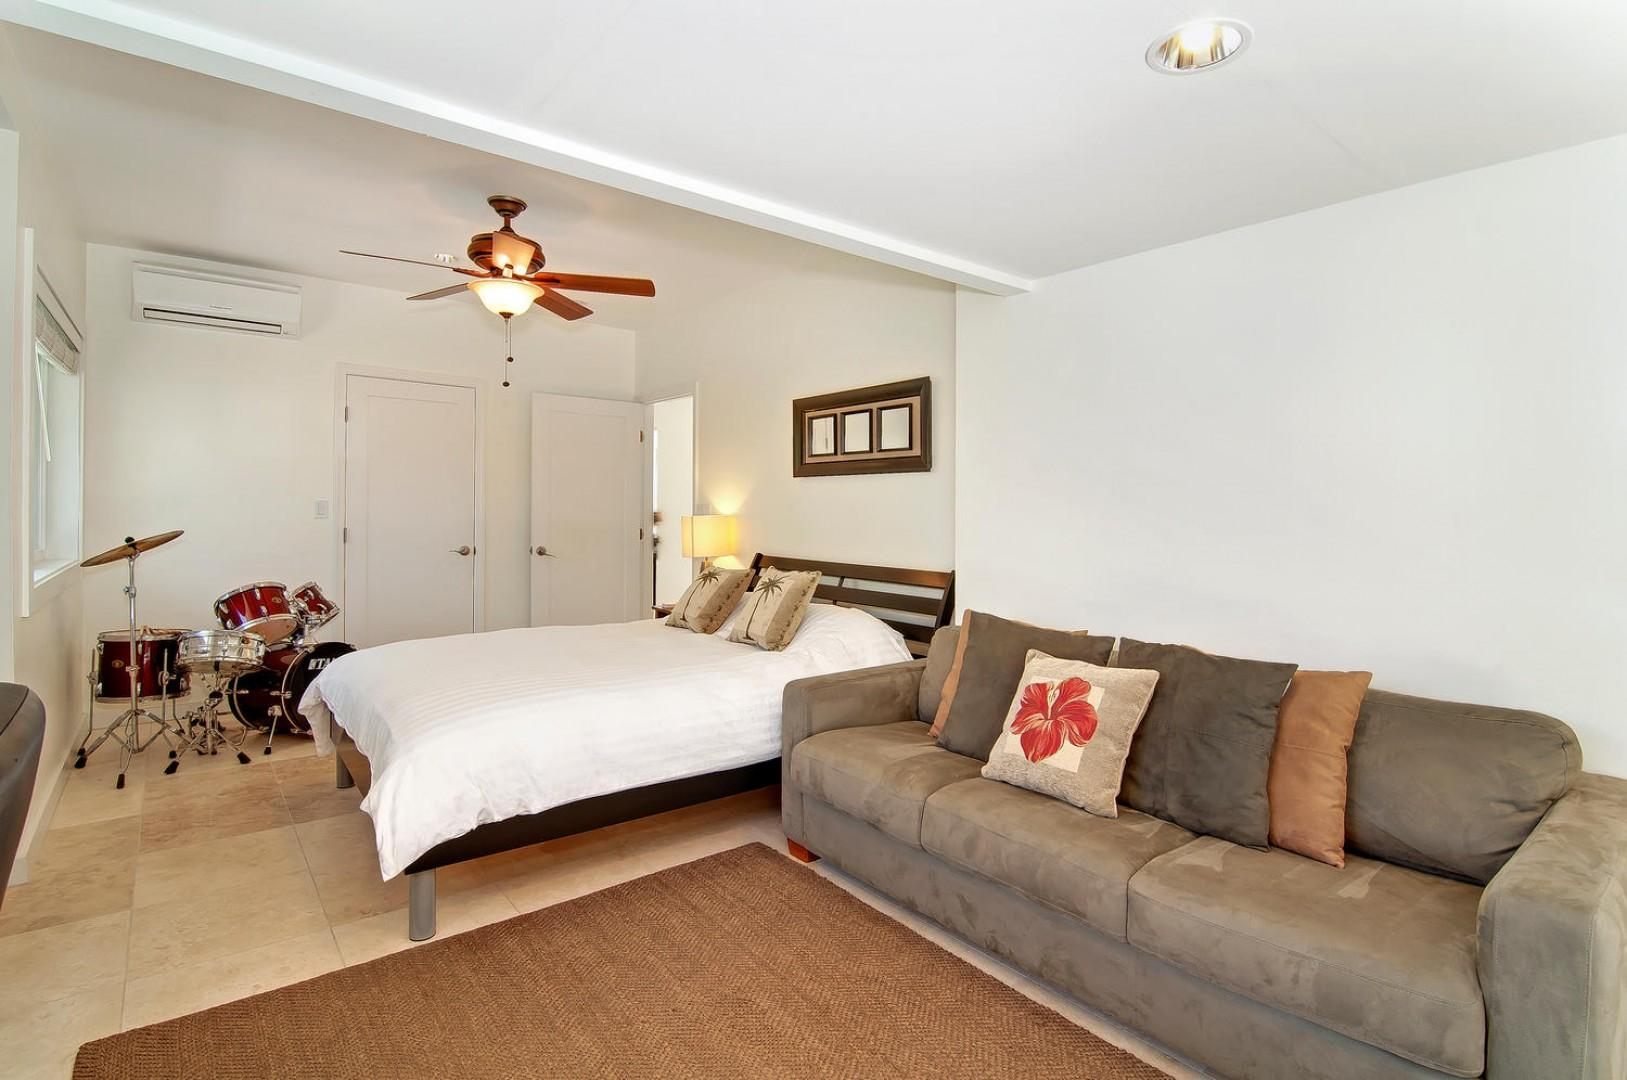 Bedroom Five - Sleeps Four. Queen bed, Sofa bed has been replaced with a twin day/trundle bed (queen), with its own lanai